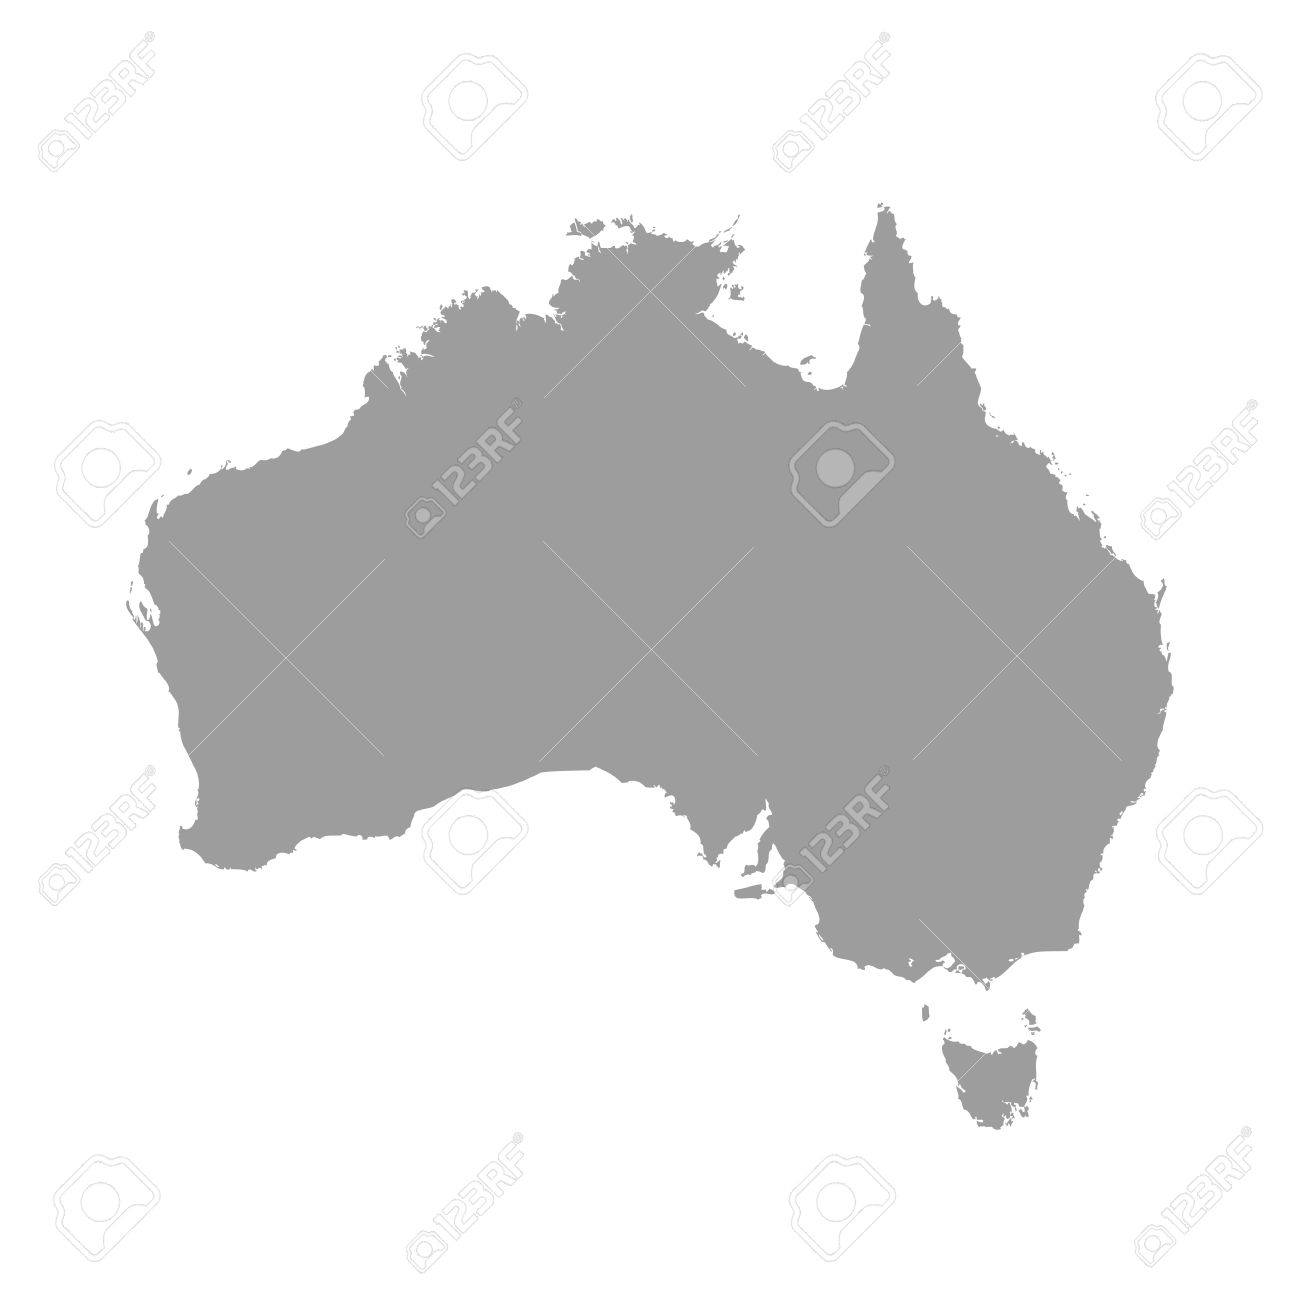 Australia Map Grey Colored On A White Background Royalty Free     Australia map grey colored on a white background Stock Vector   49549406